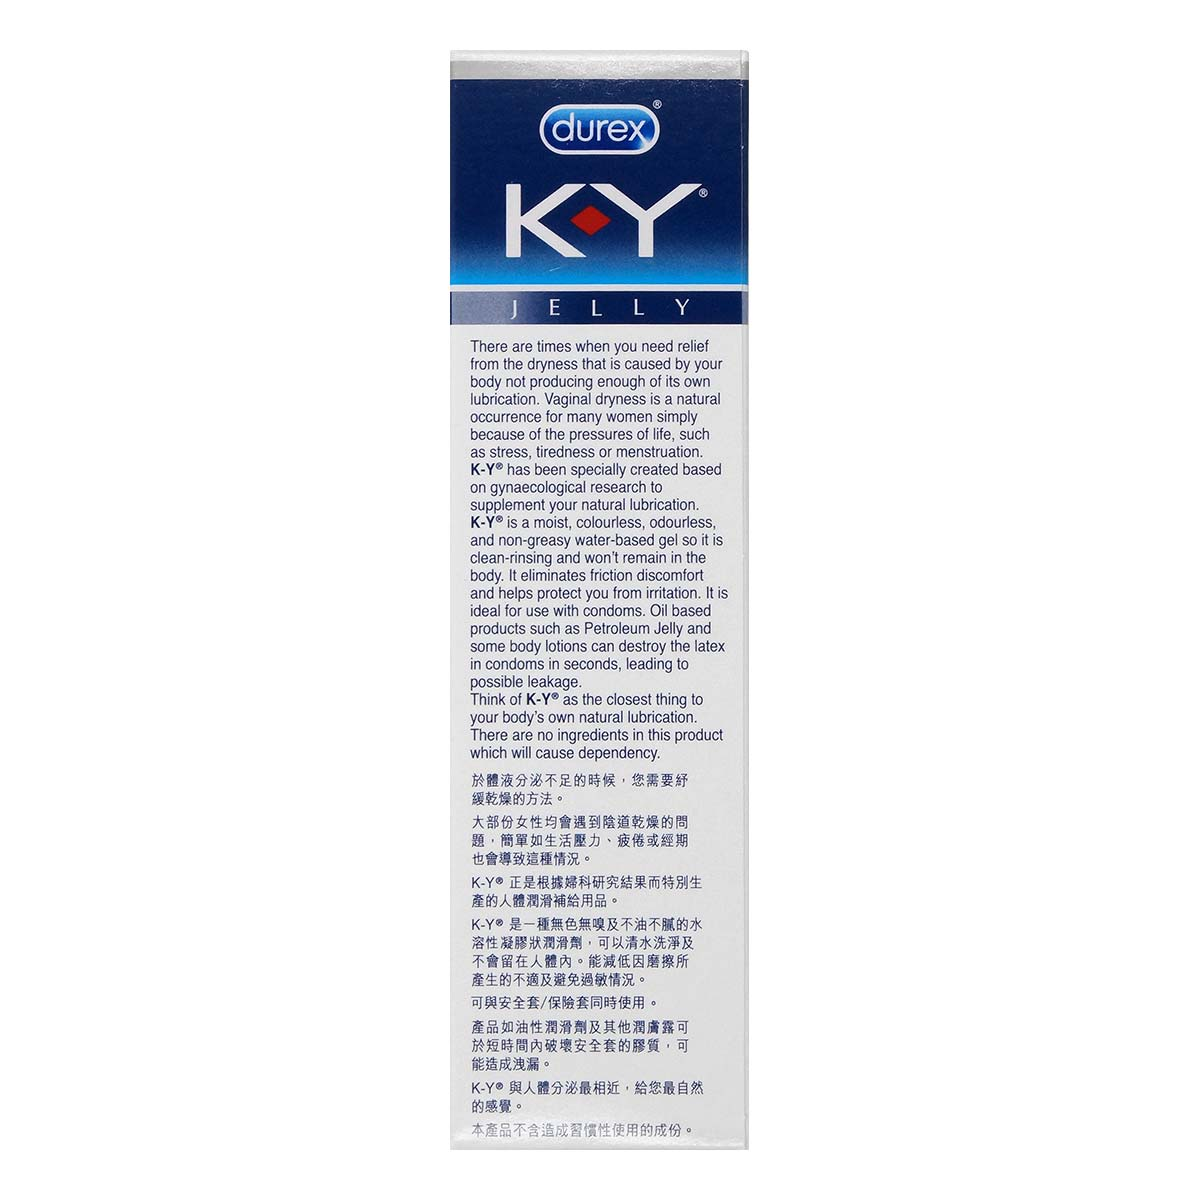 Durex KY Jelly 100g Water-based Lubricant - Hong Kong Edition